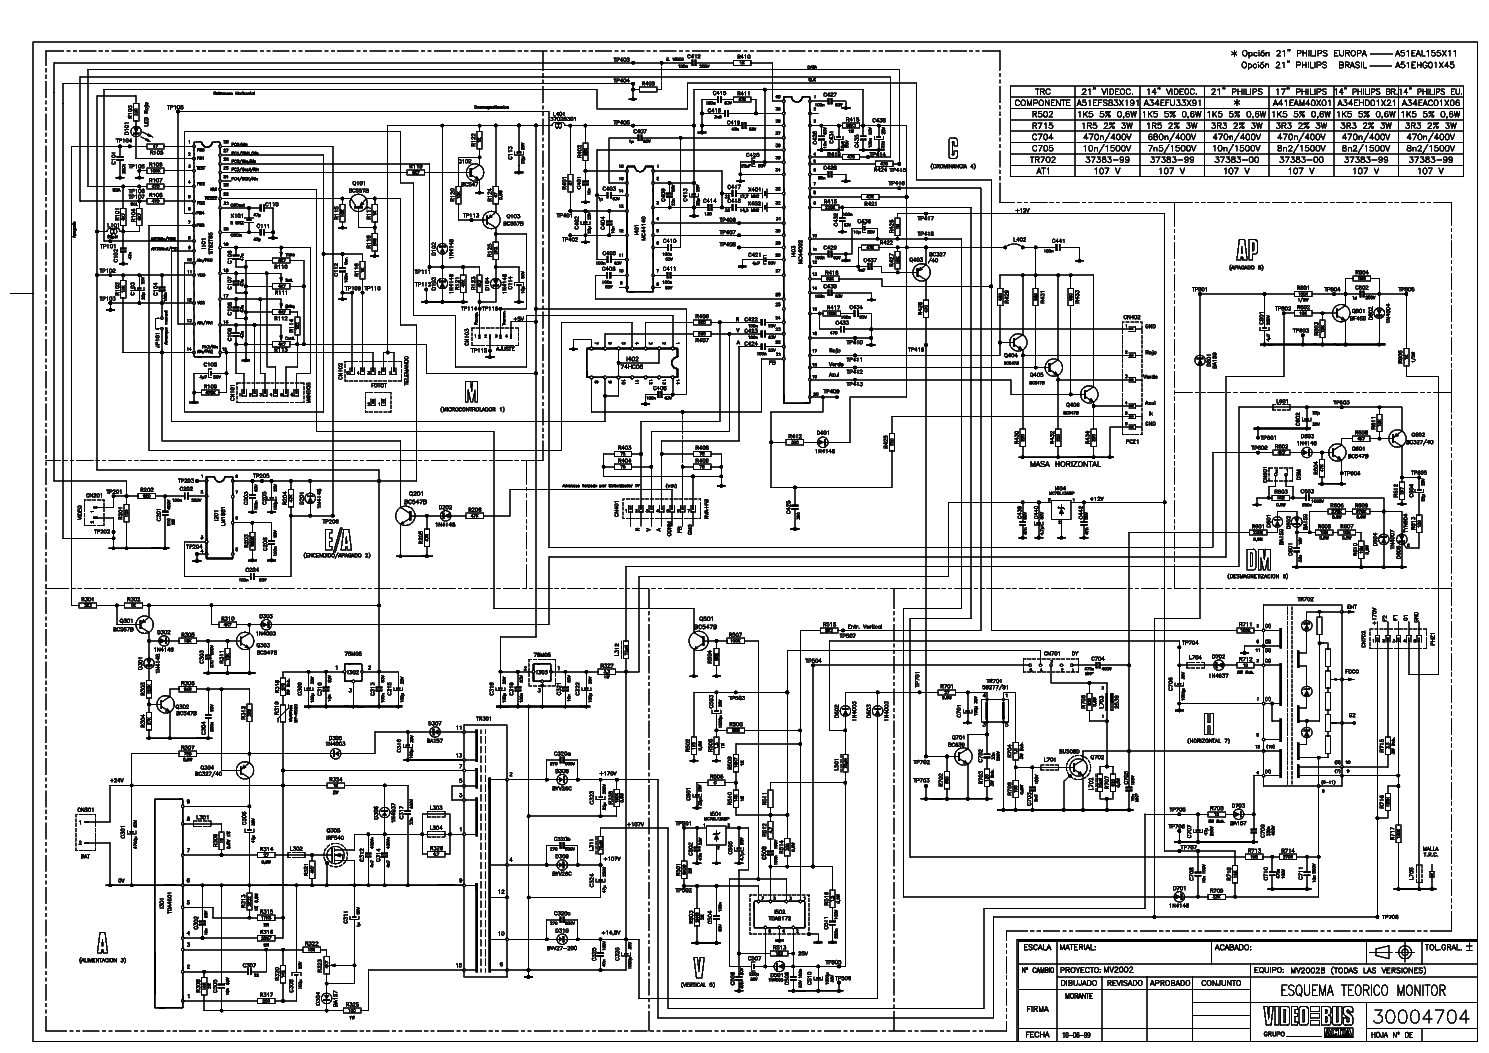 Actia Mv2002 Crt Monitor Sch Service Manual Download  Schematics  Eeprom  Repair Info For